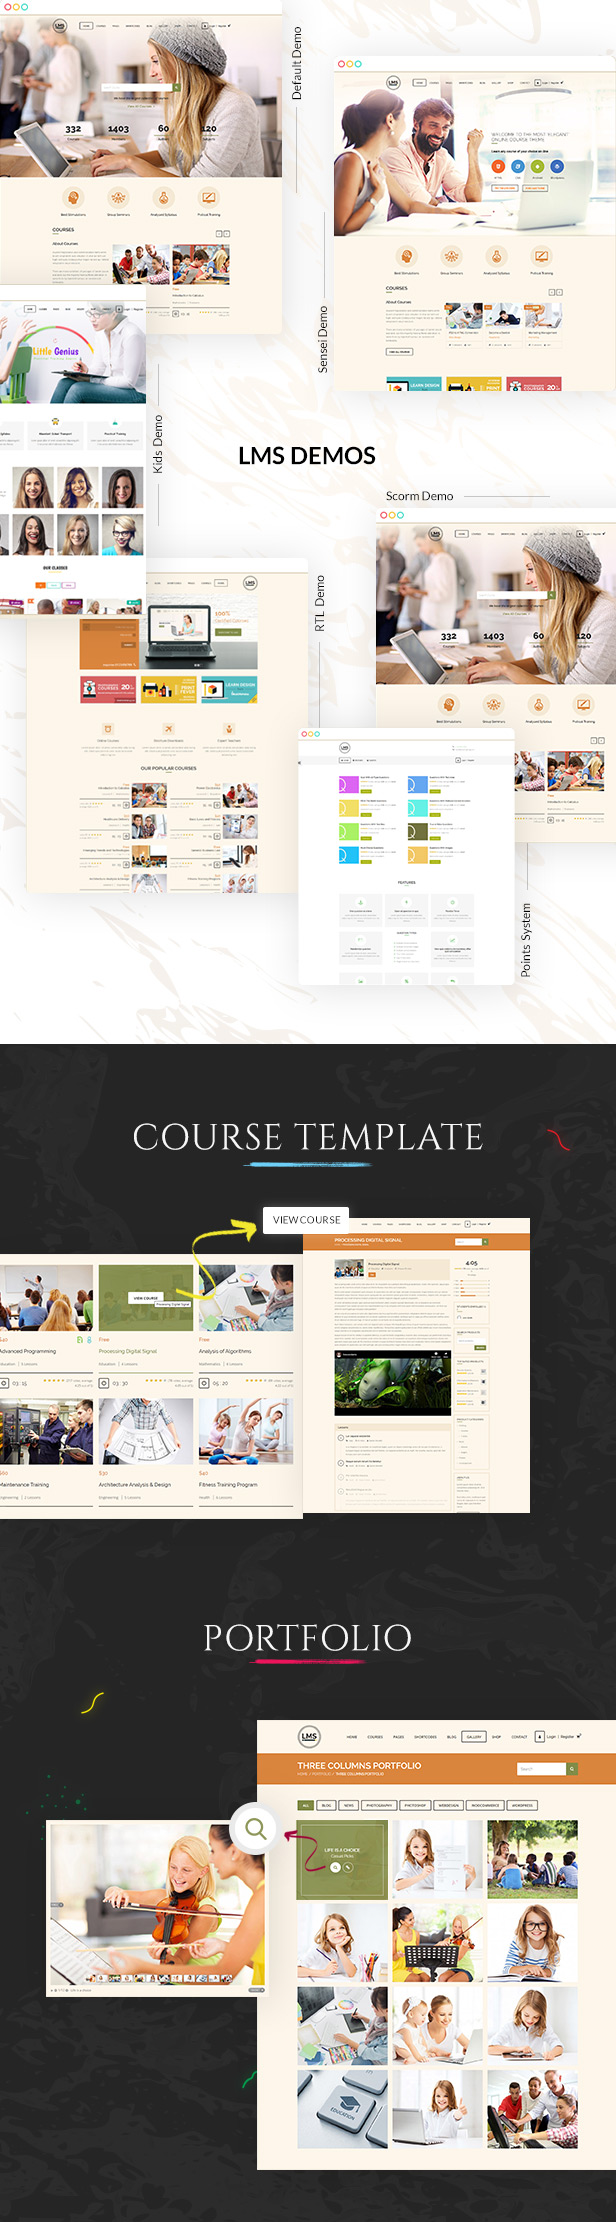 LMS WordPress Theme - 2